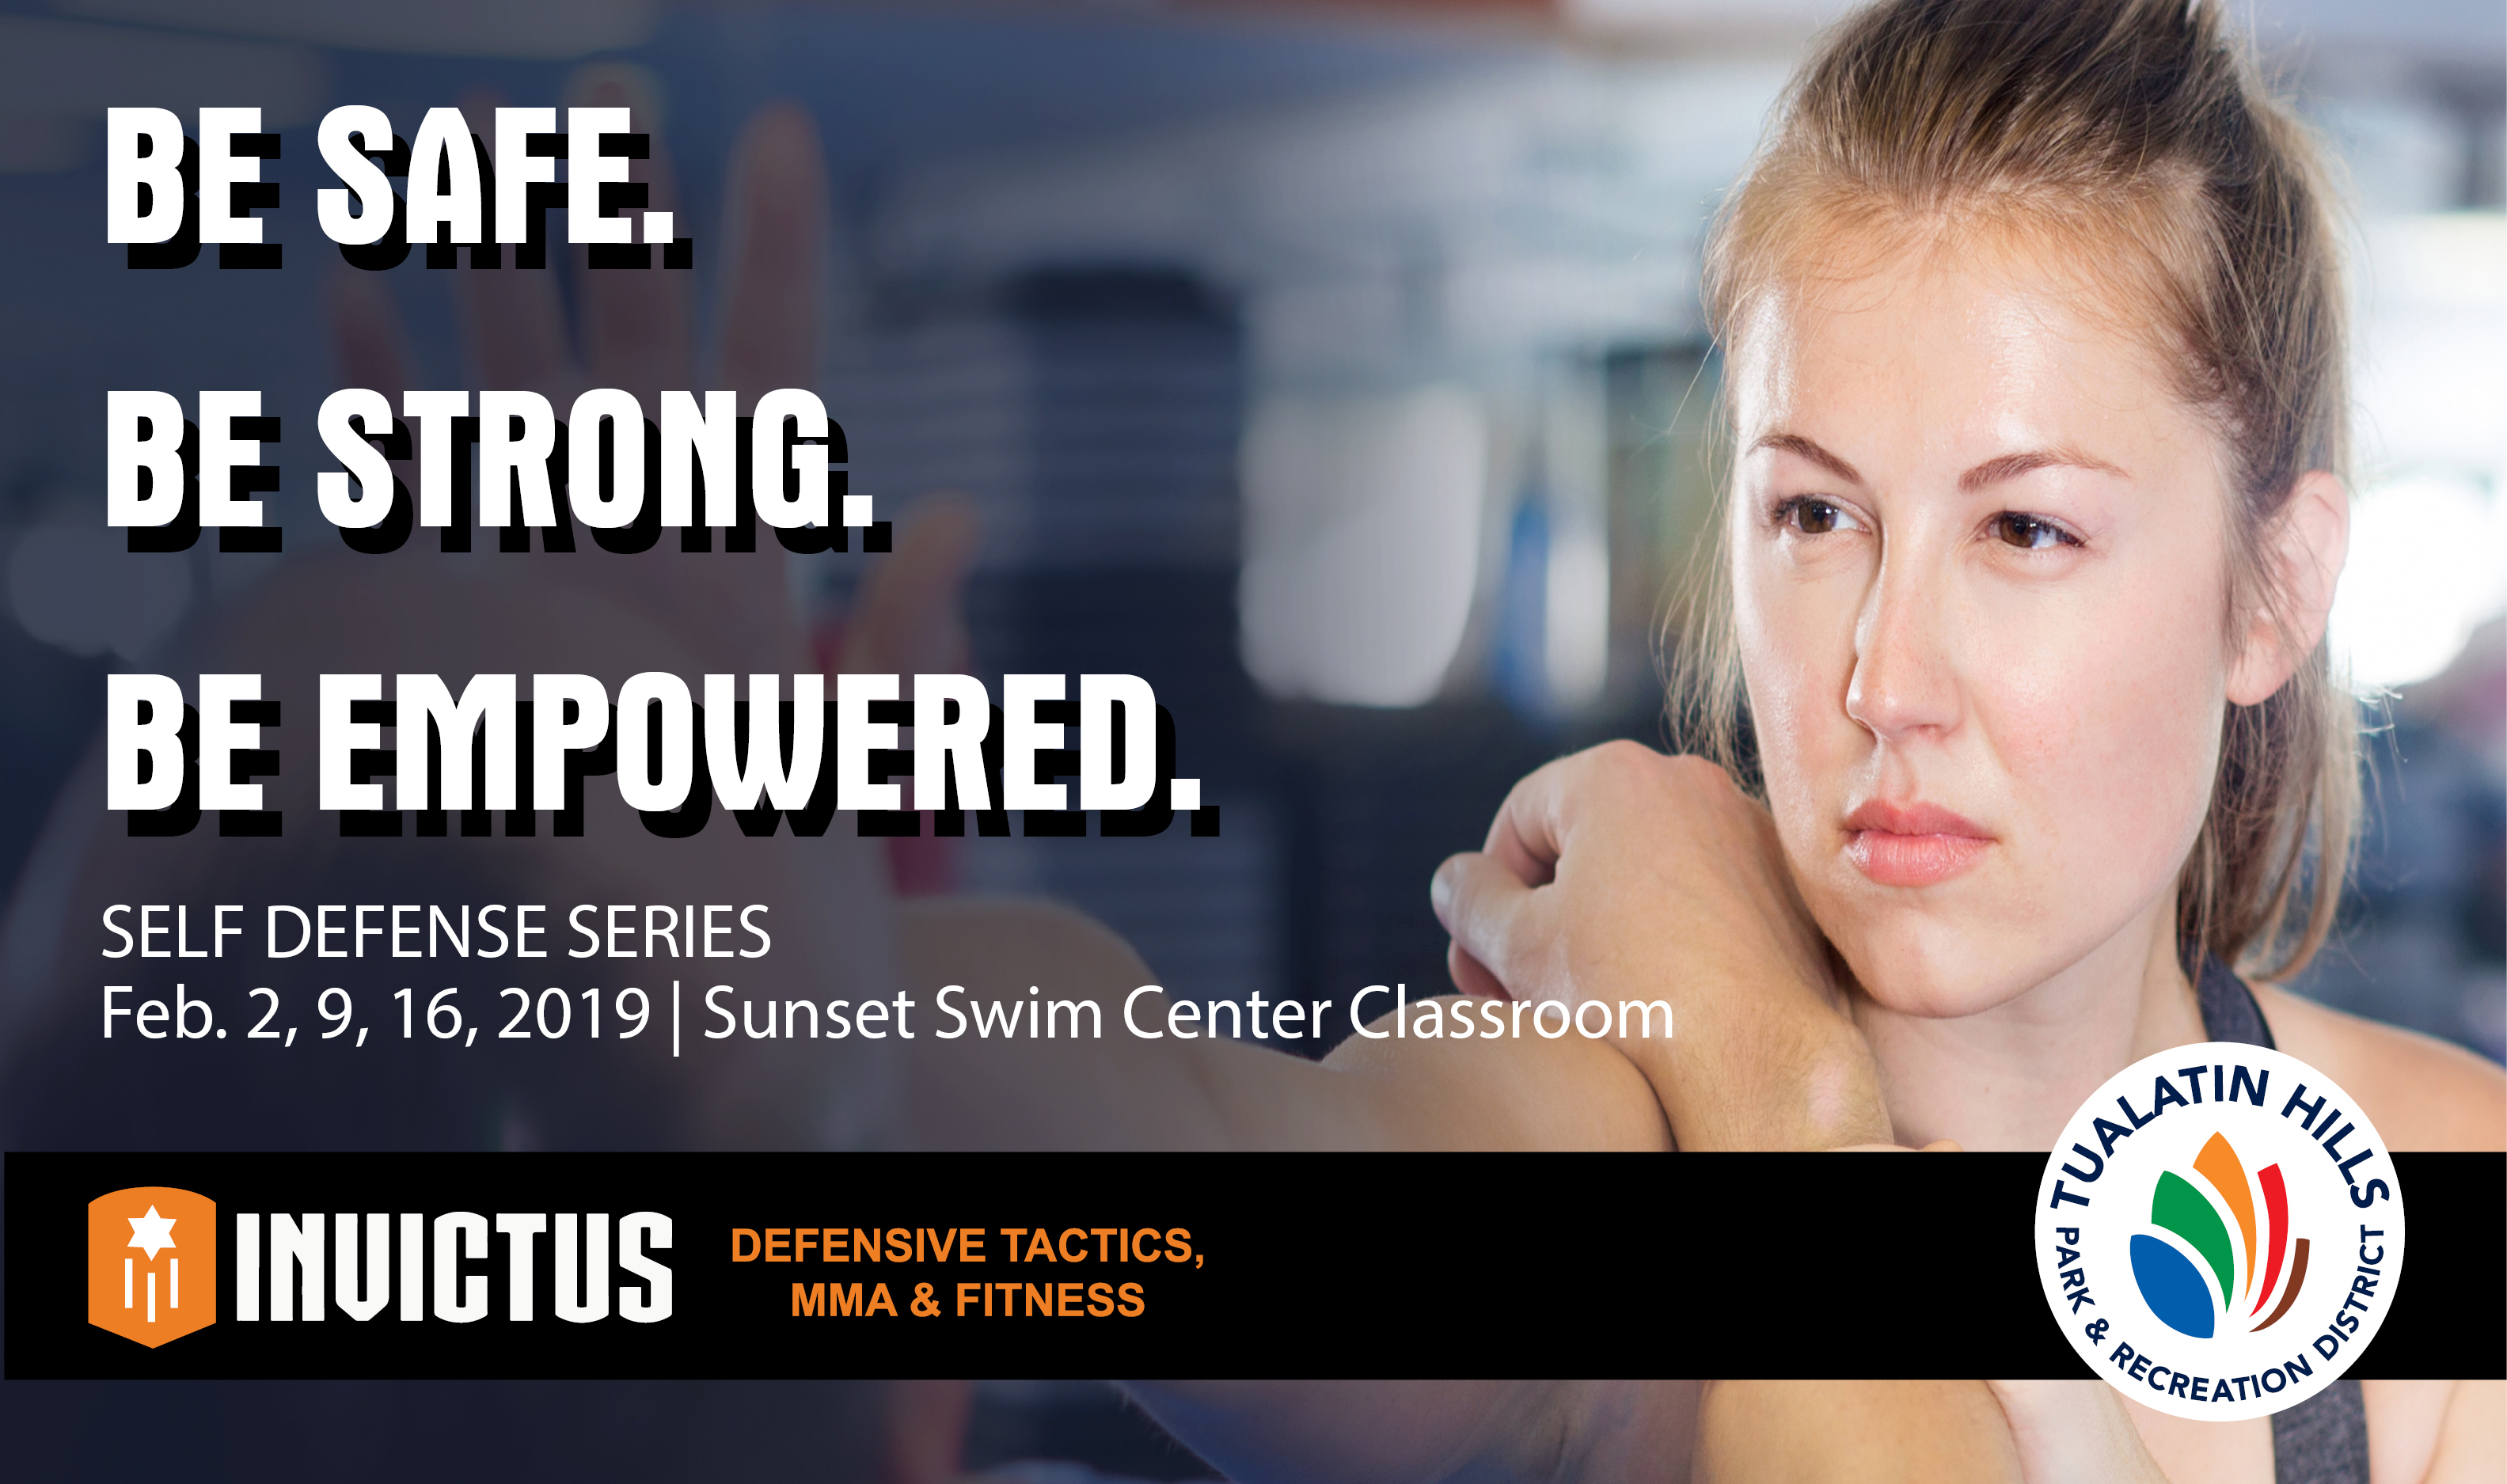 Self Defense Series - Be strong, safe & empowered